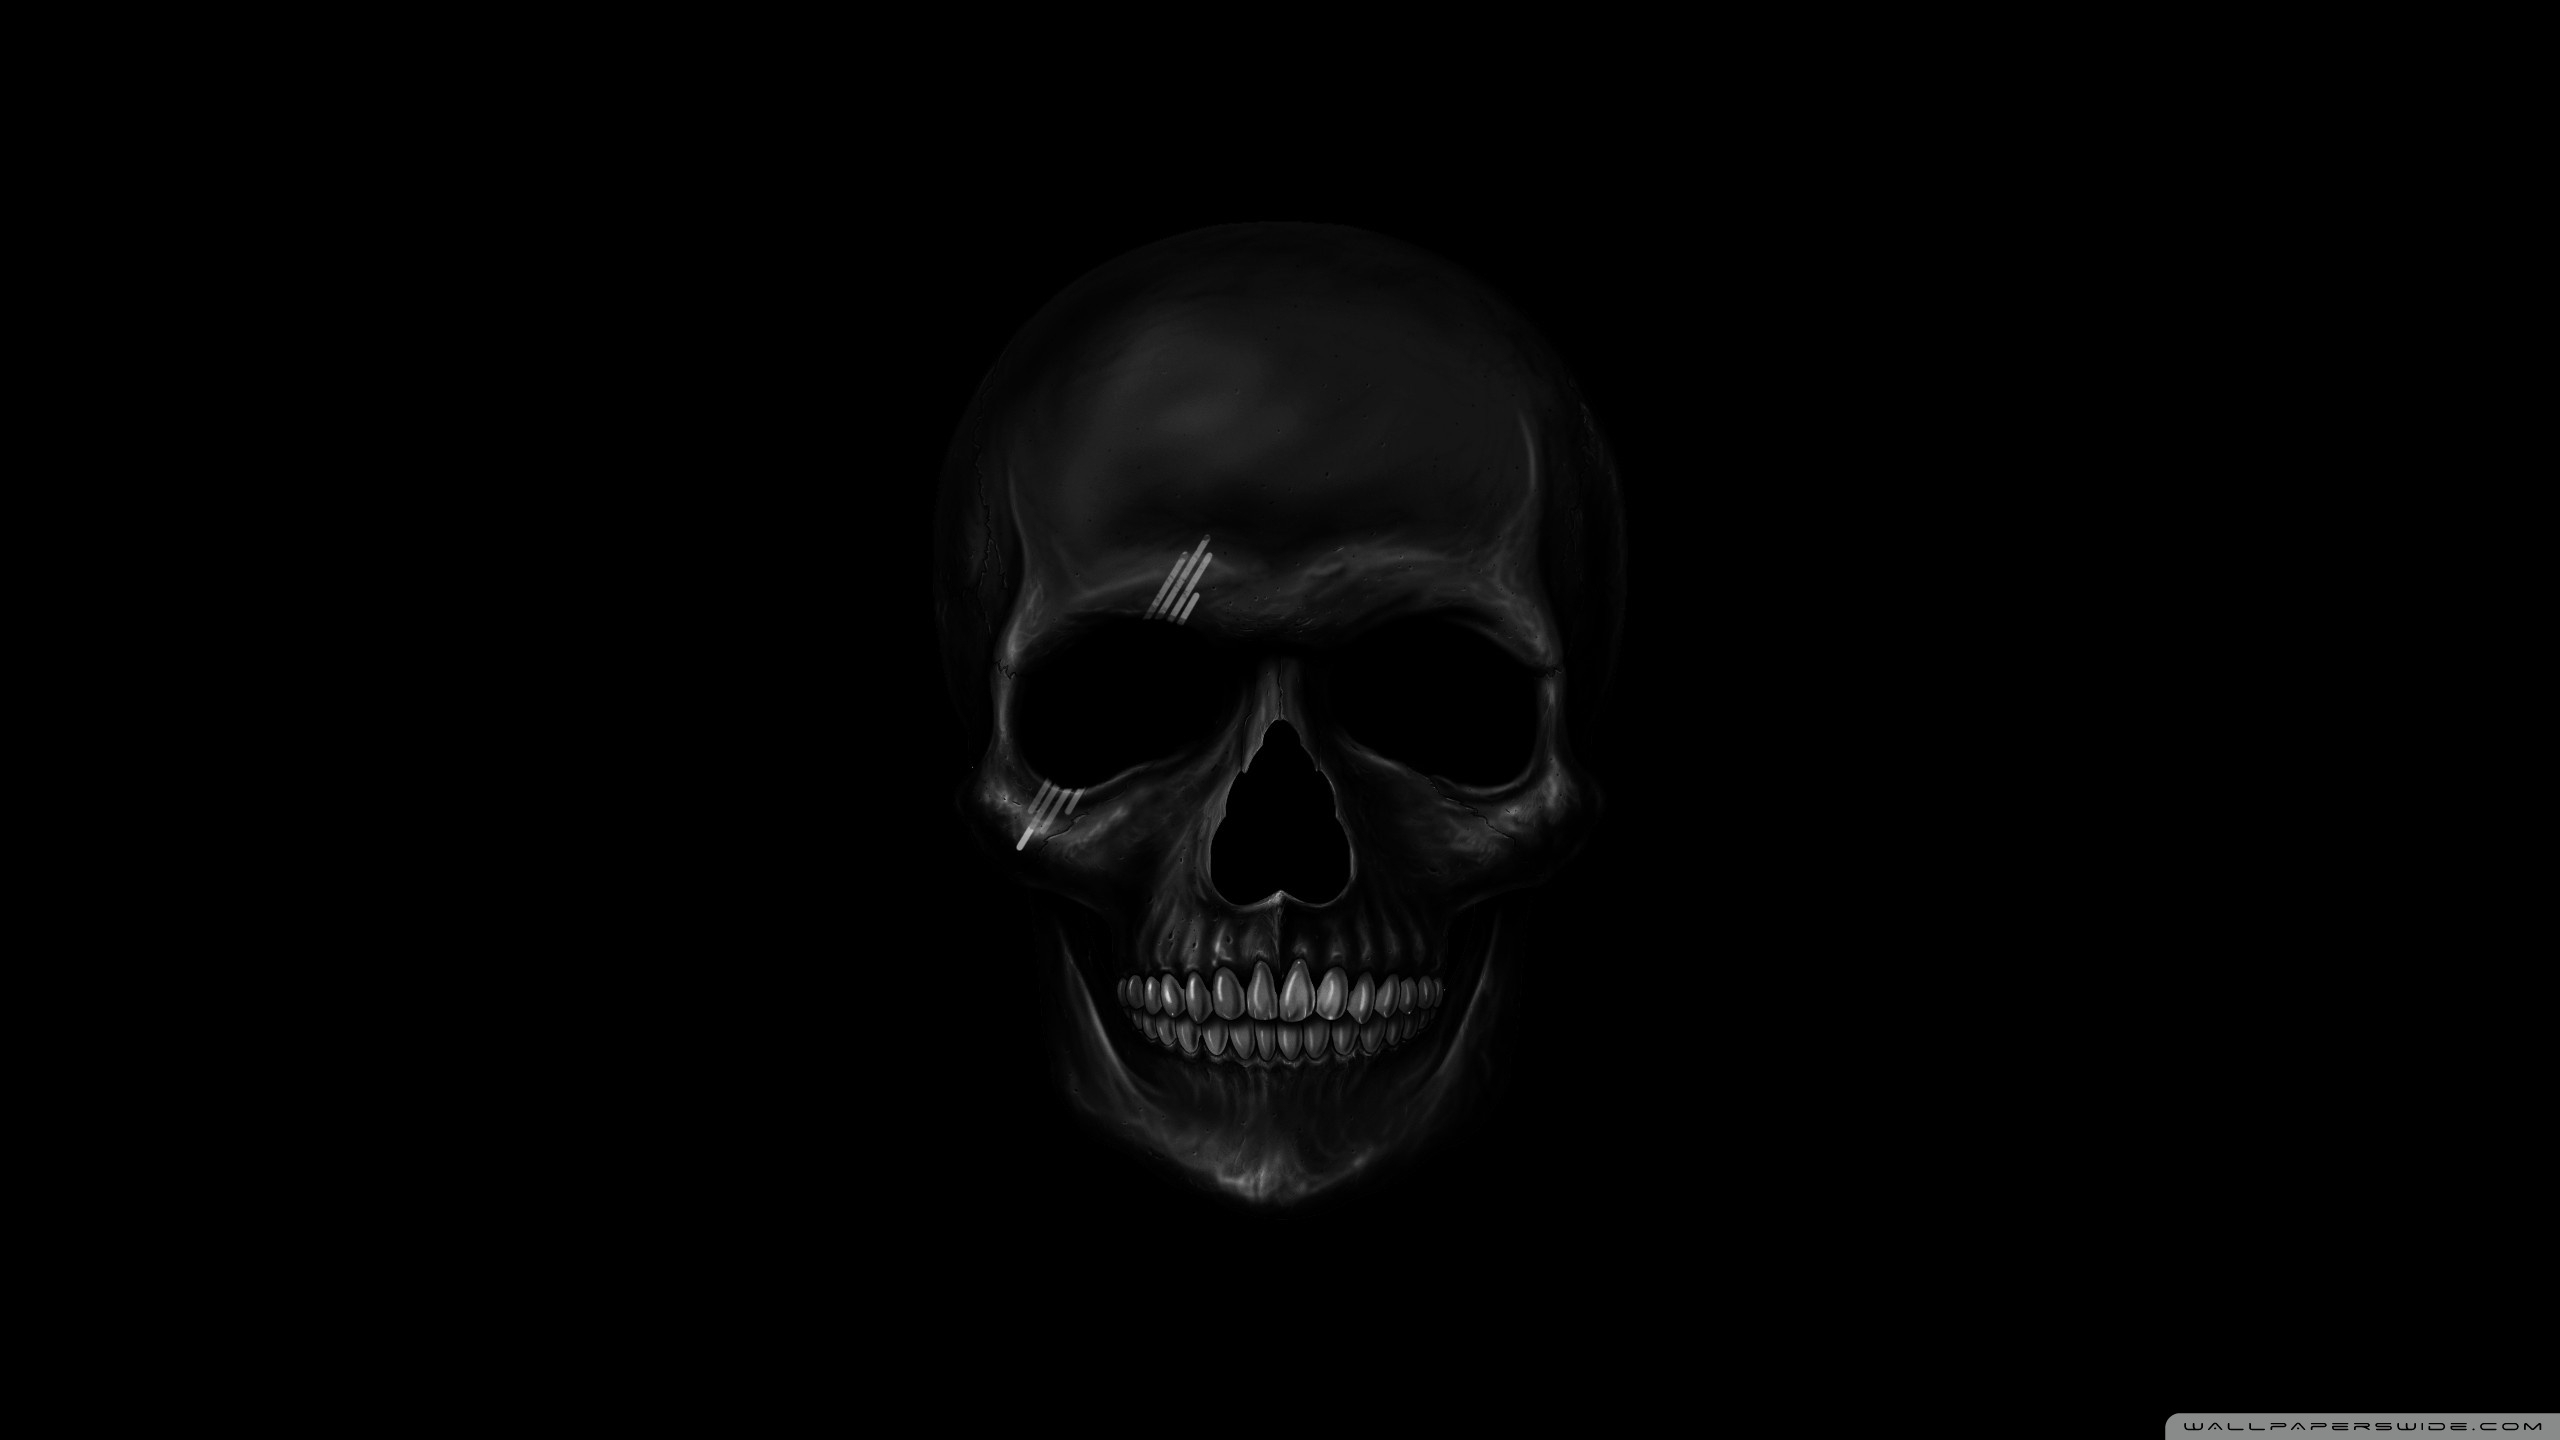 black skull ❤ 4k hd desktop wallpaper for 4k ultra hd tv • dual